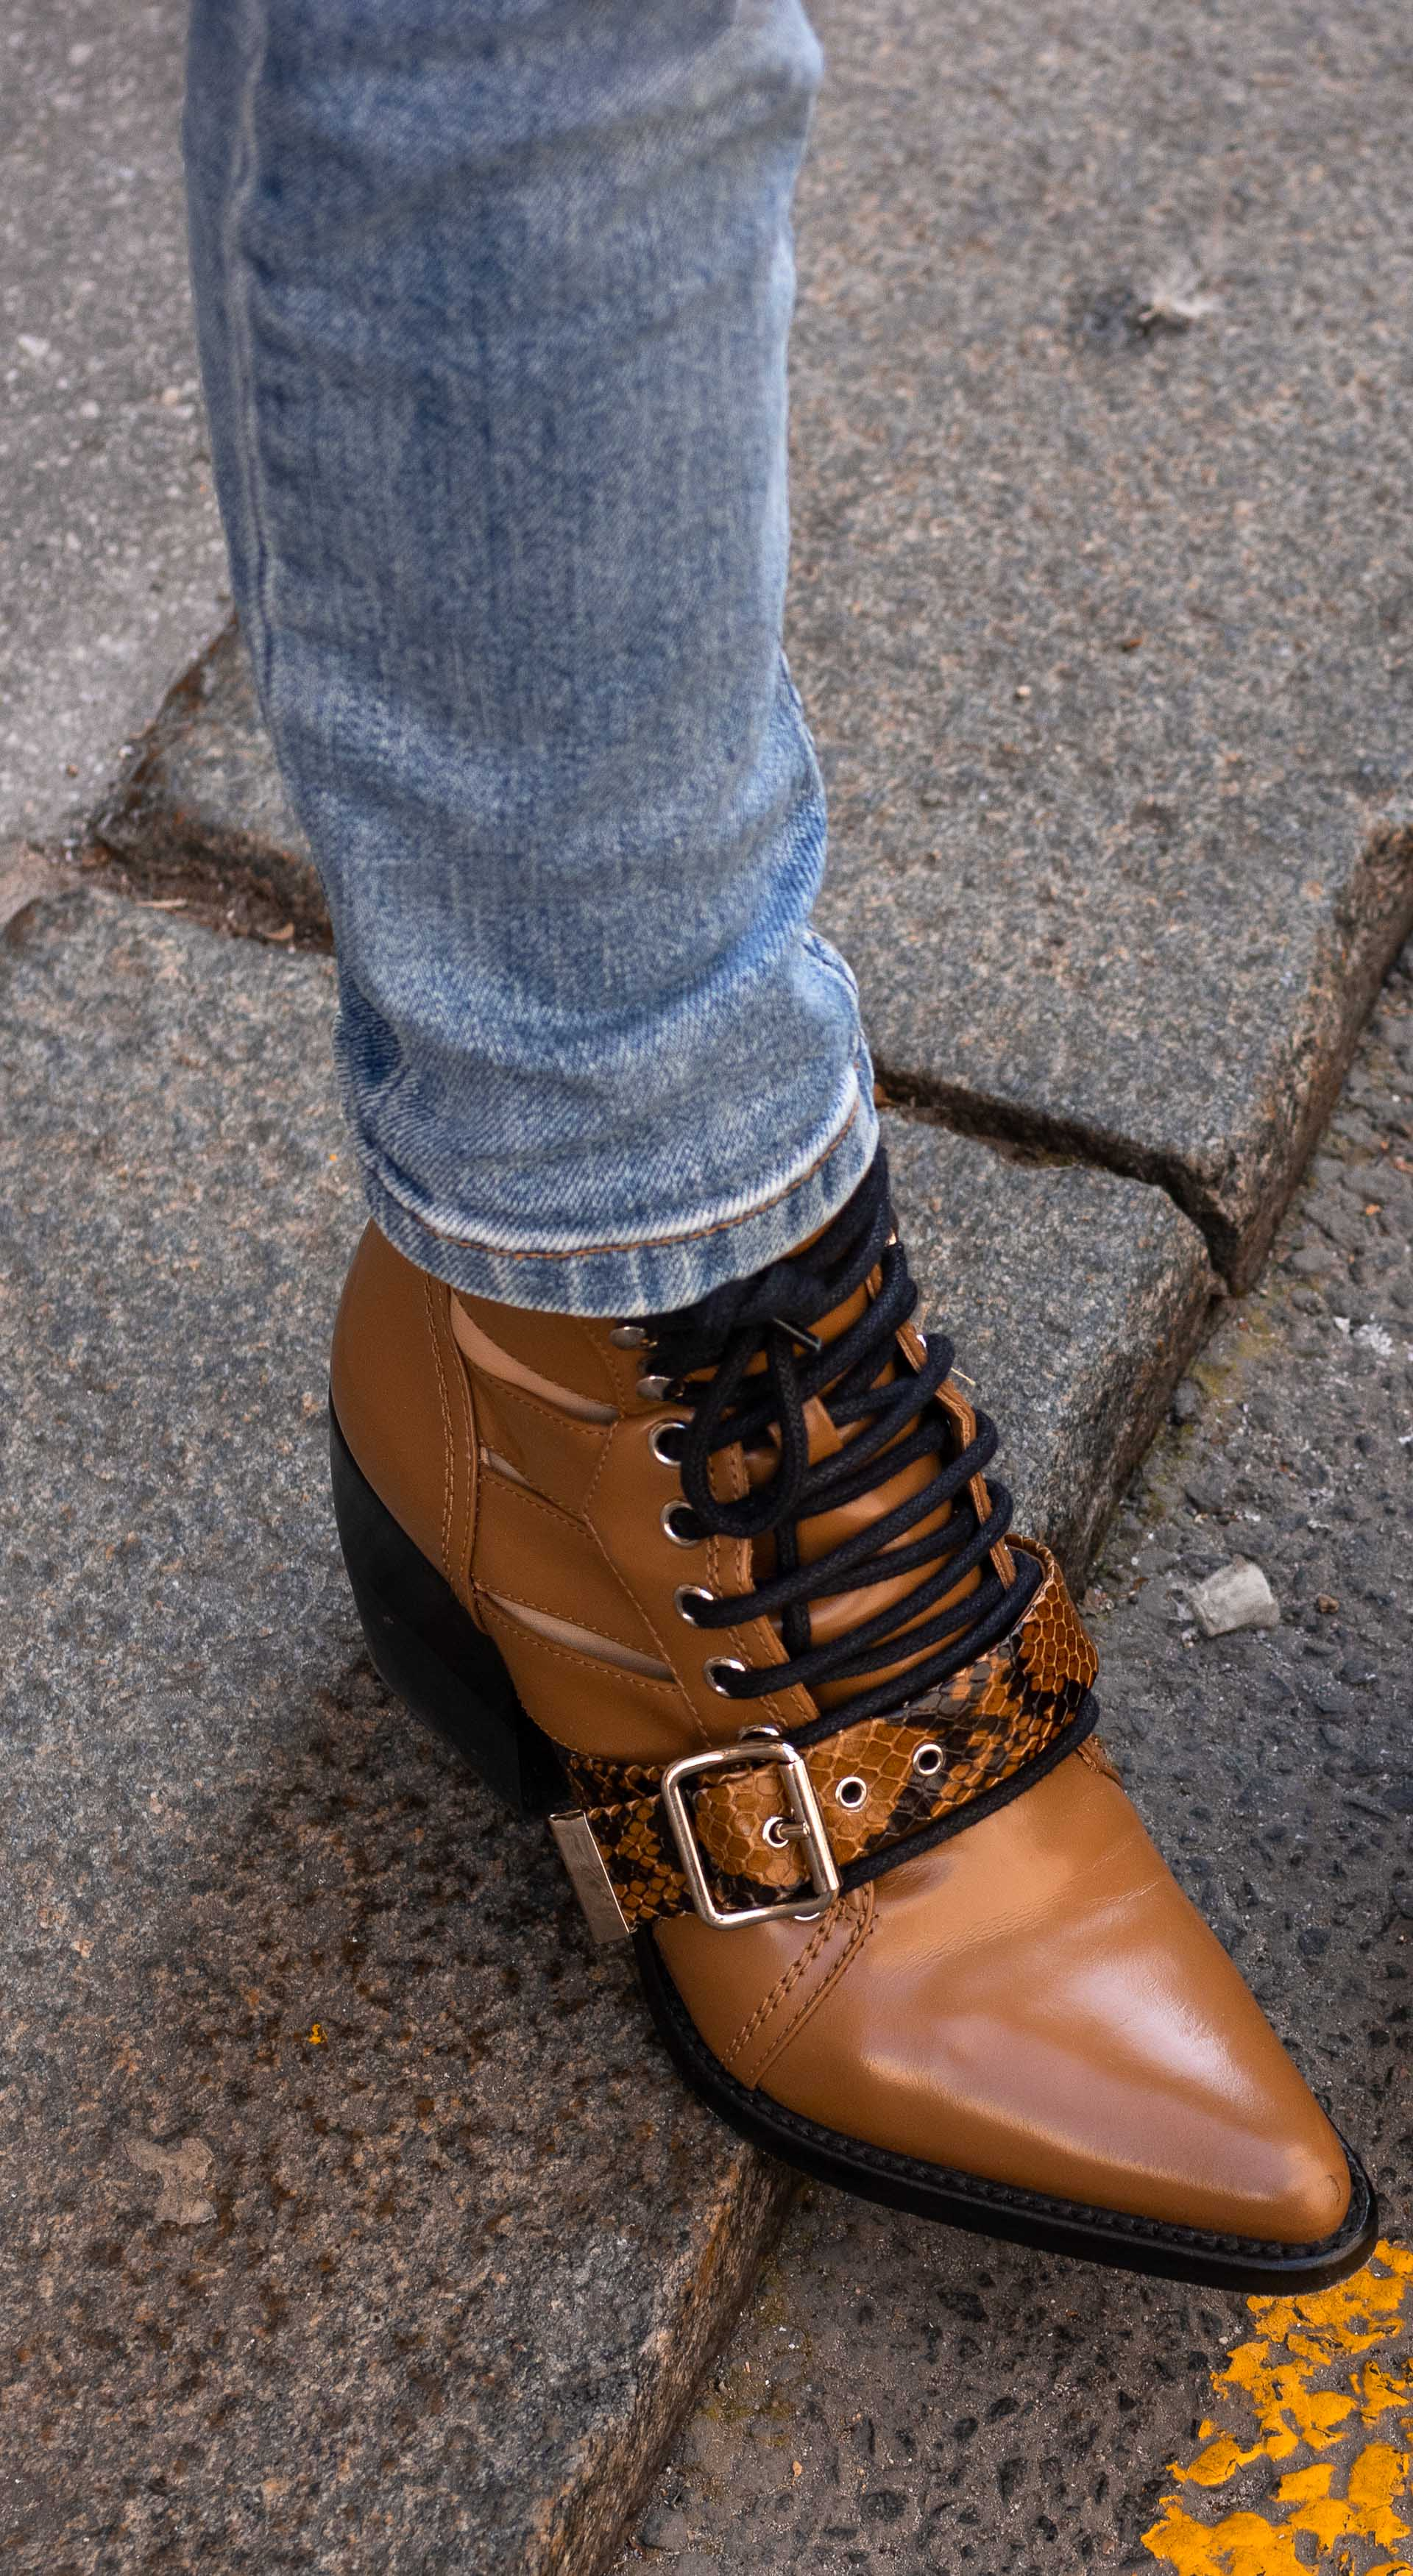 Brunette from Wall Street chloé rylee boot blue jeans